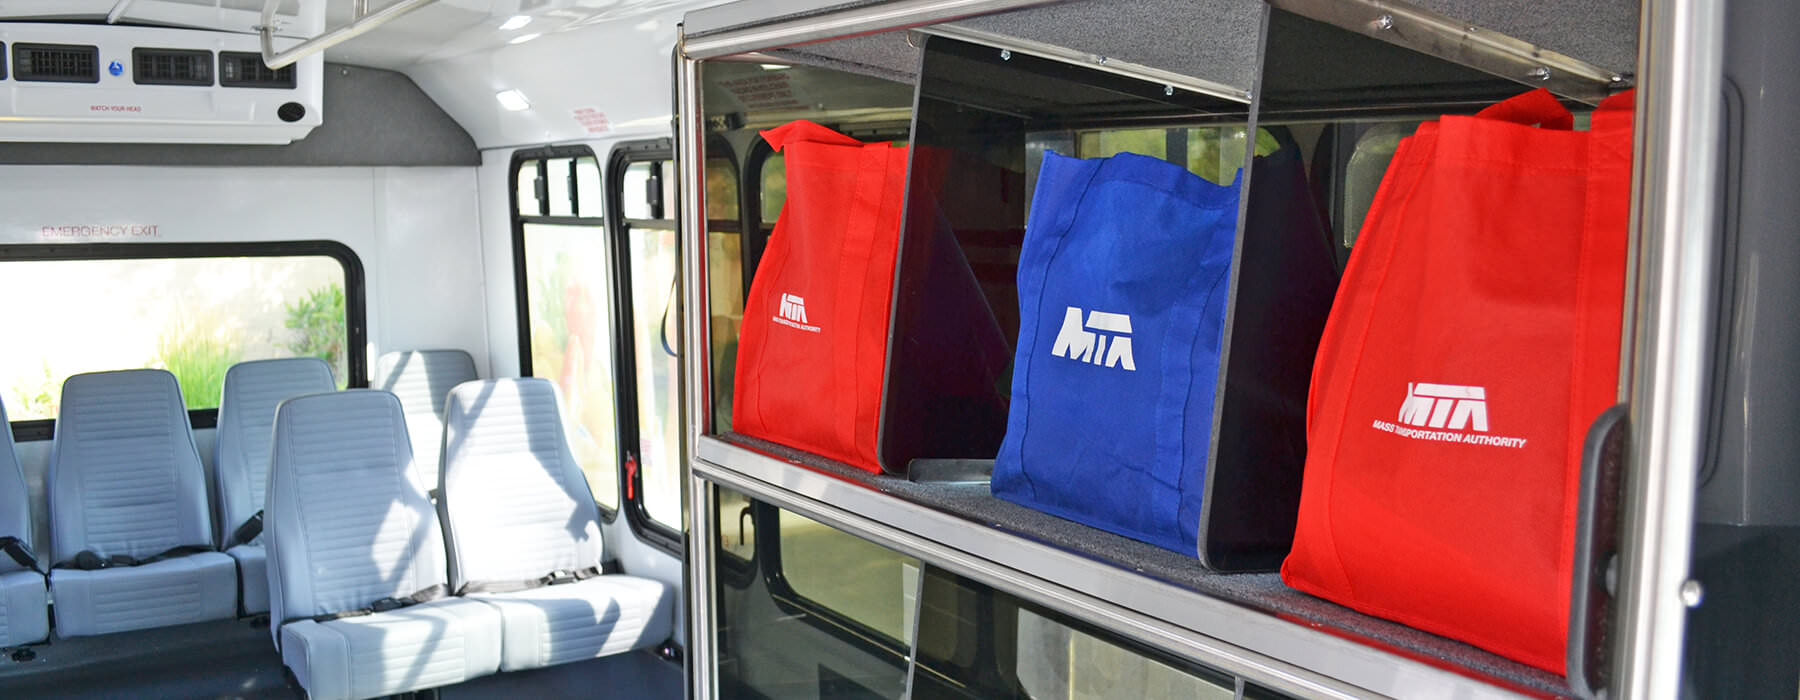 Ride to Groceries bus showing bins to hold grocery bags while traveling.